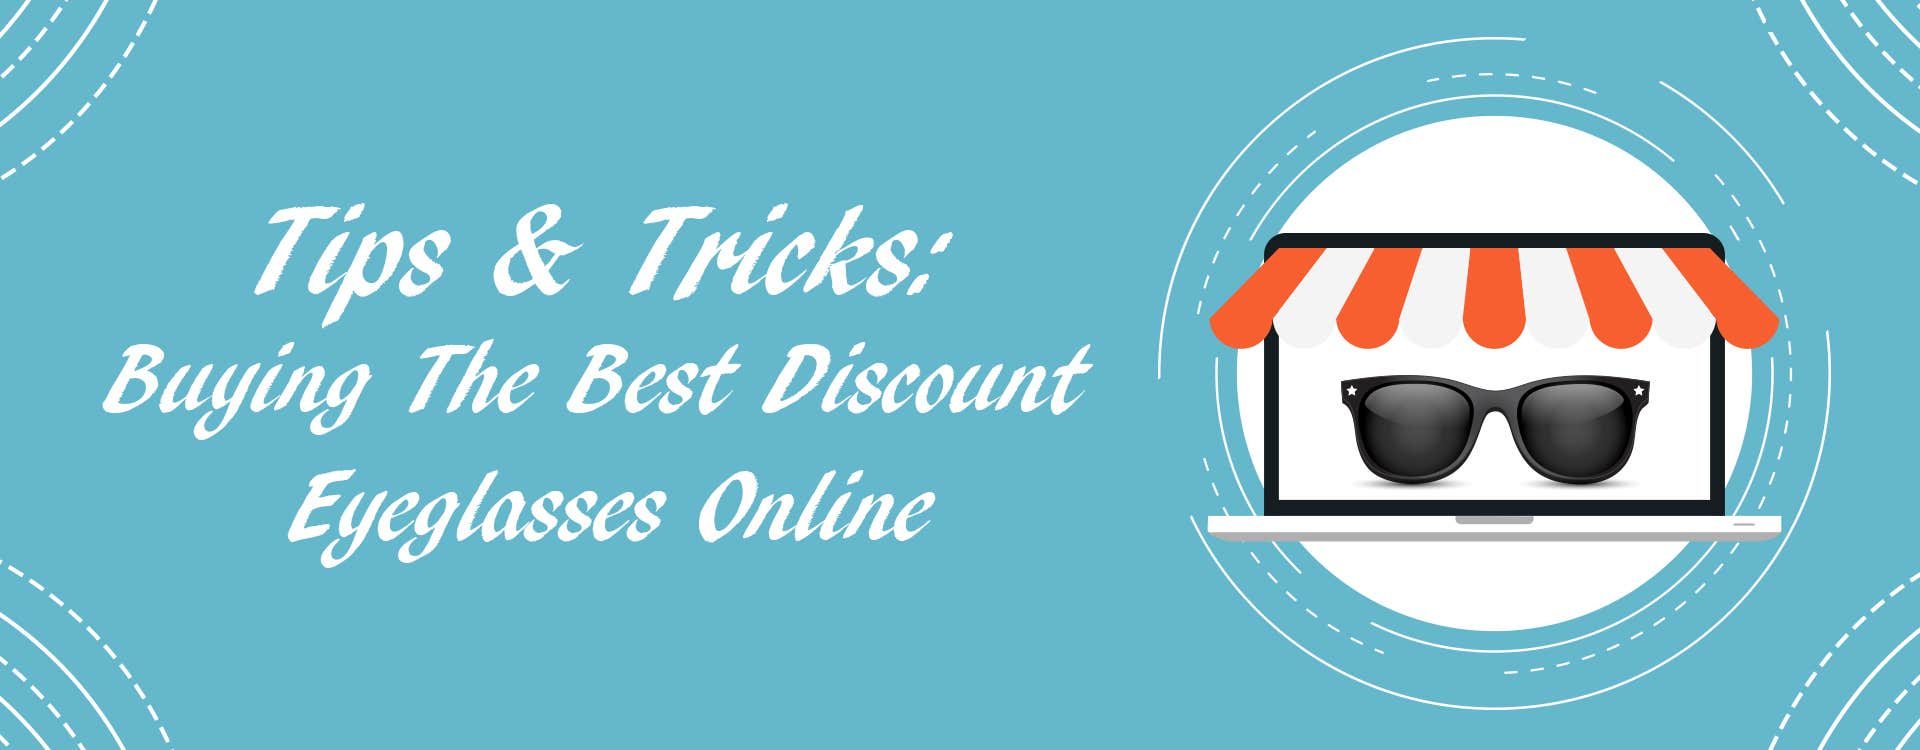 Tips & Tricks:  Buying The Best Discount Eyeglasses Online